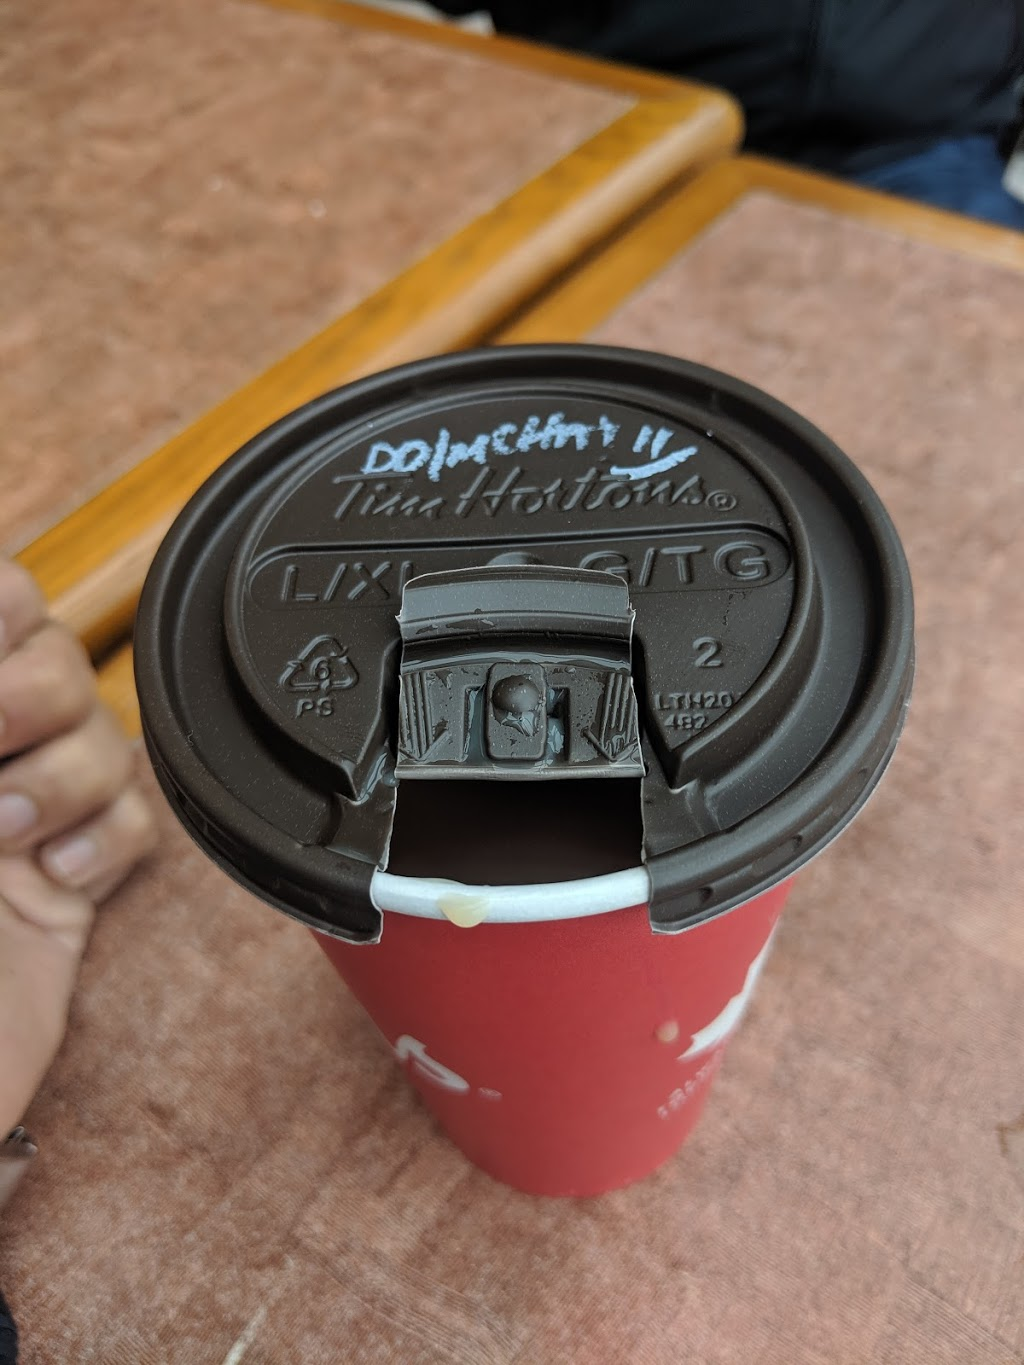 Tim Hortons | cafe | 620 S Service Rd, Stoney Creek, ON L8E 2W1, Canada | 9056431508 OR +1 905-643-1508